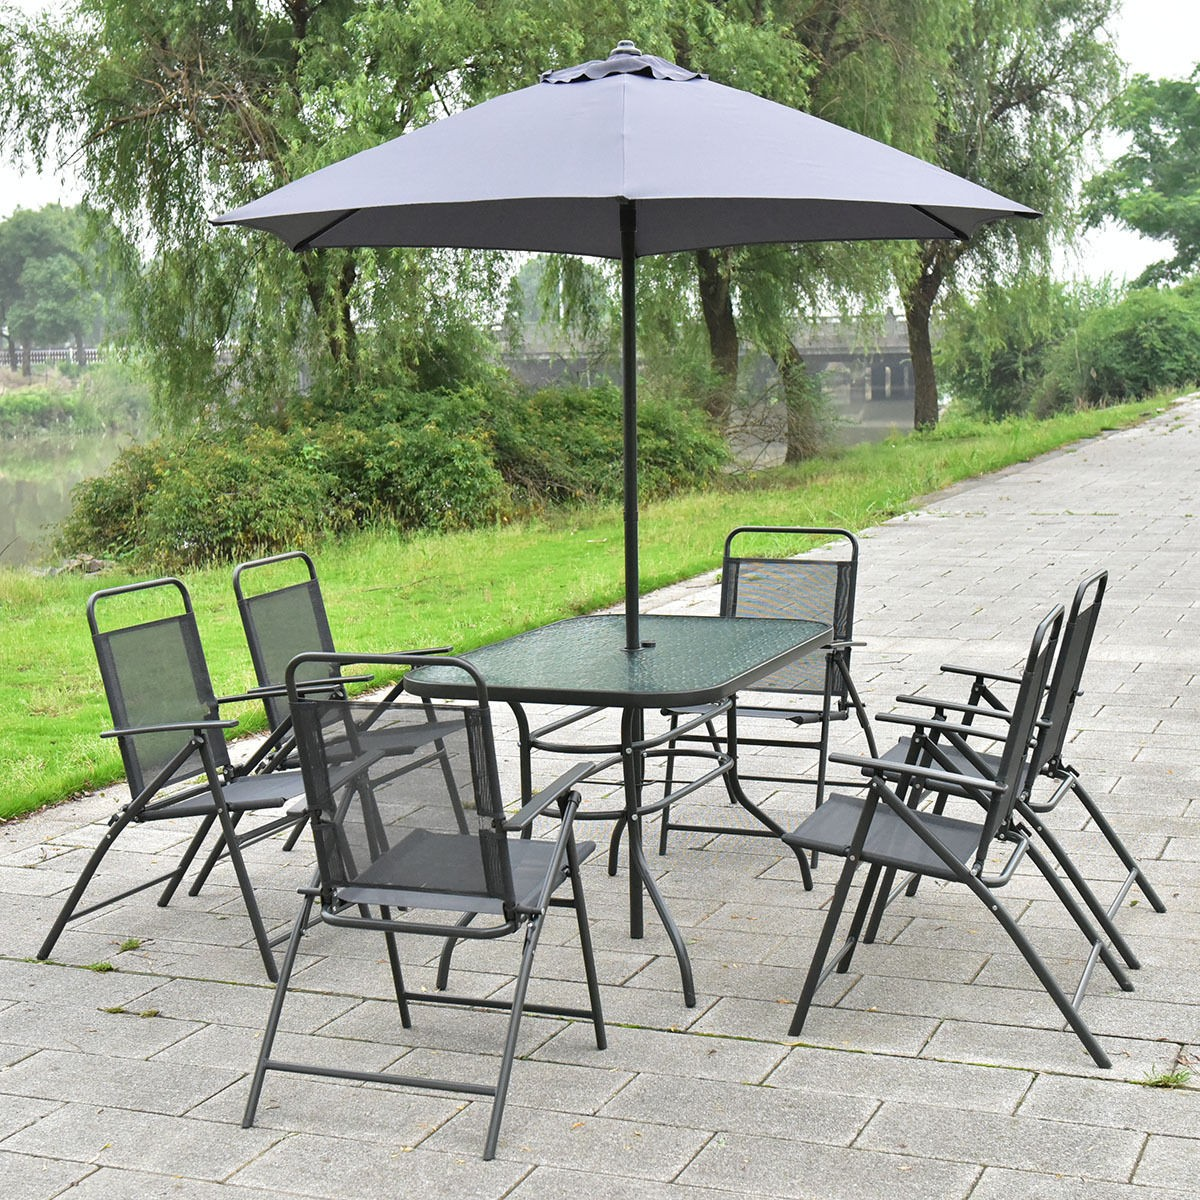 Patio Umbrella With Table: 8 PCS Patio Garden Set Furniture 6 Folding Chairs Table